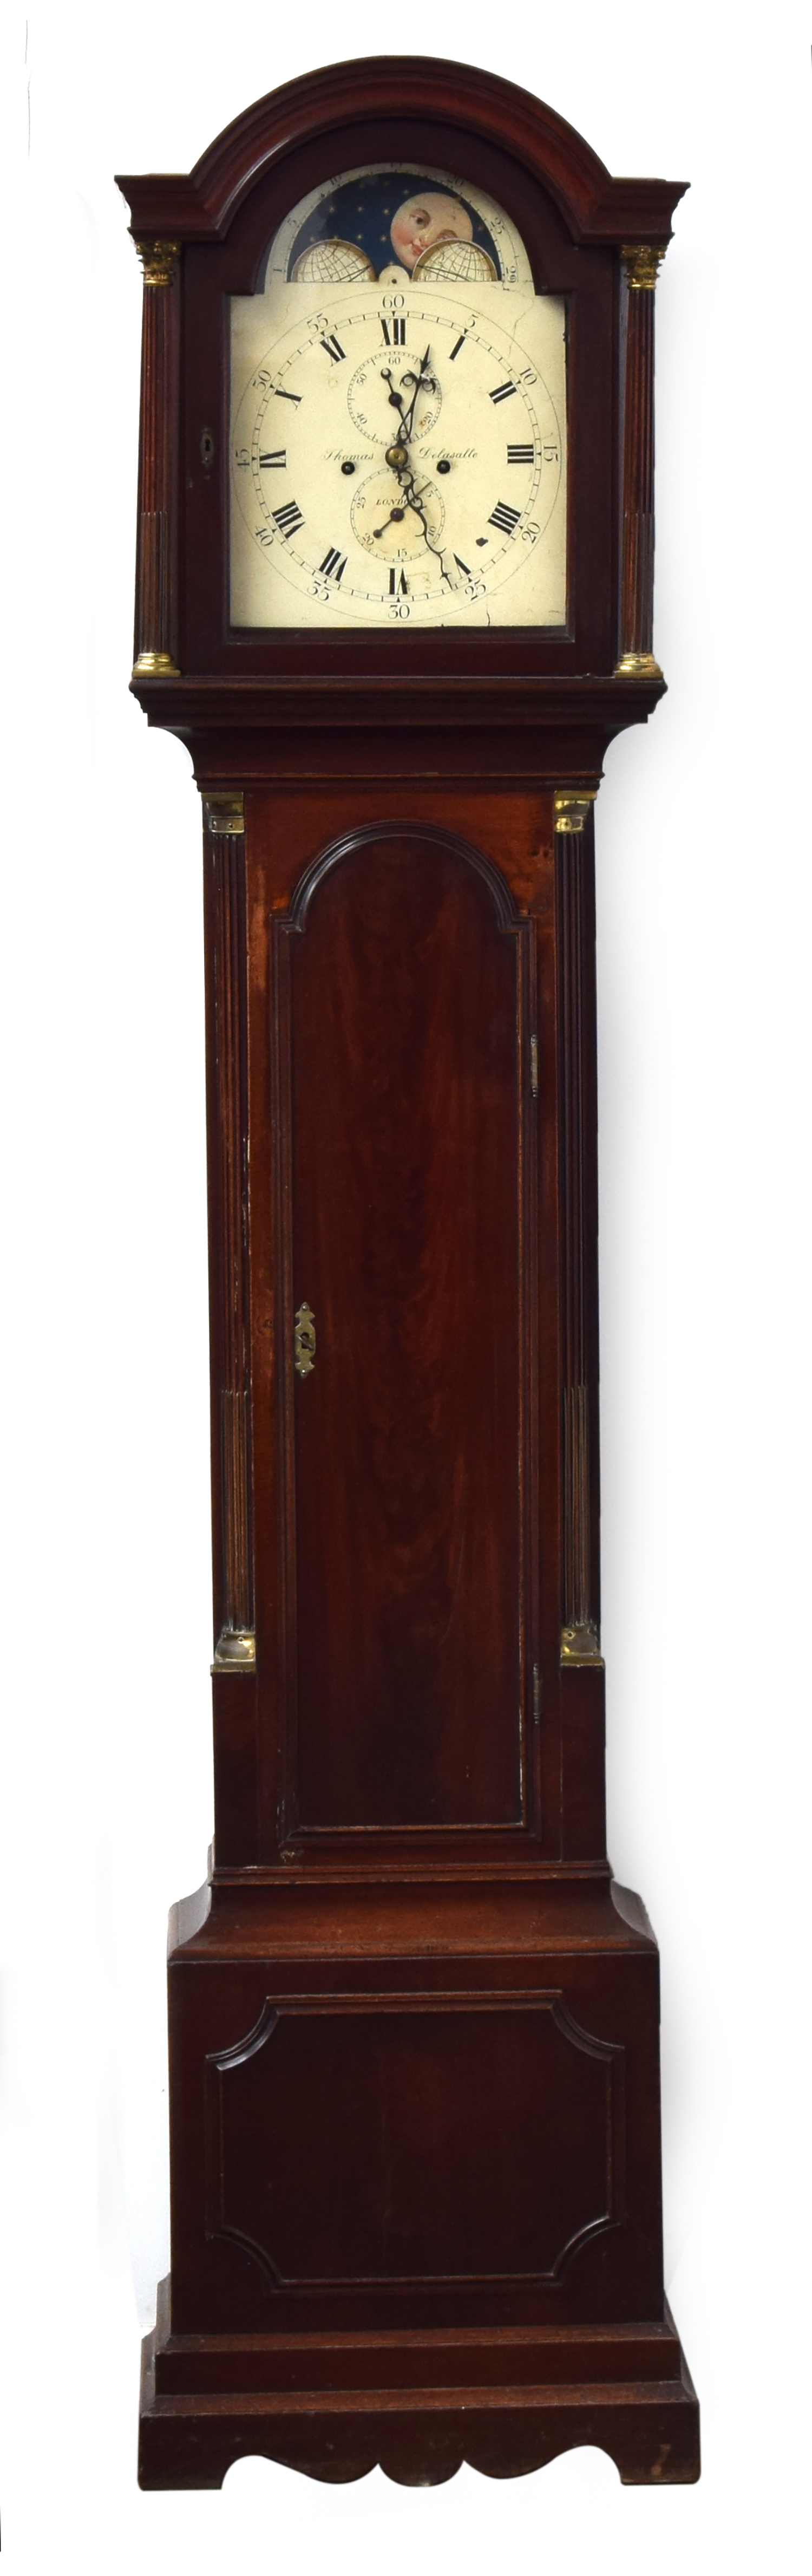 A mahogany longcase clock, the domed dial with moonphase, two subsidiary dials, Arabic minutes and